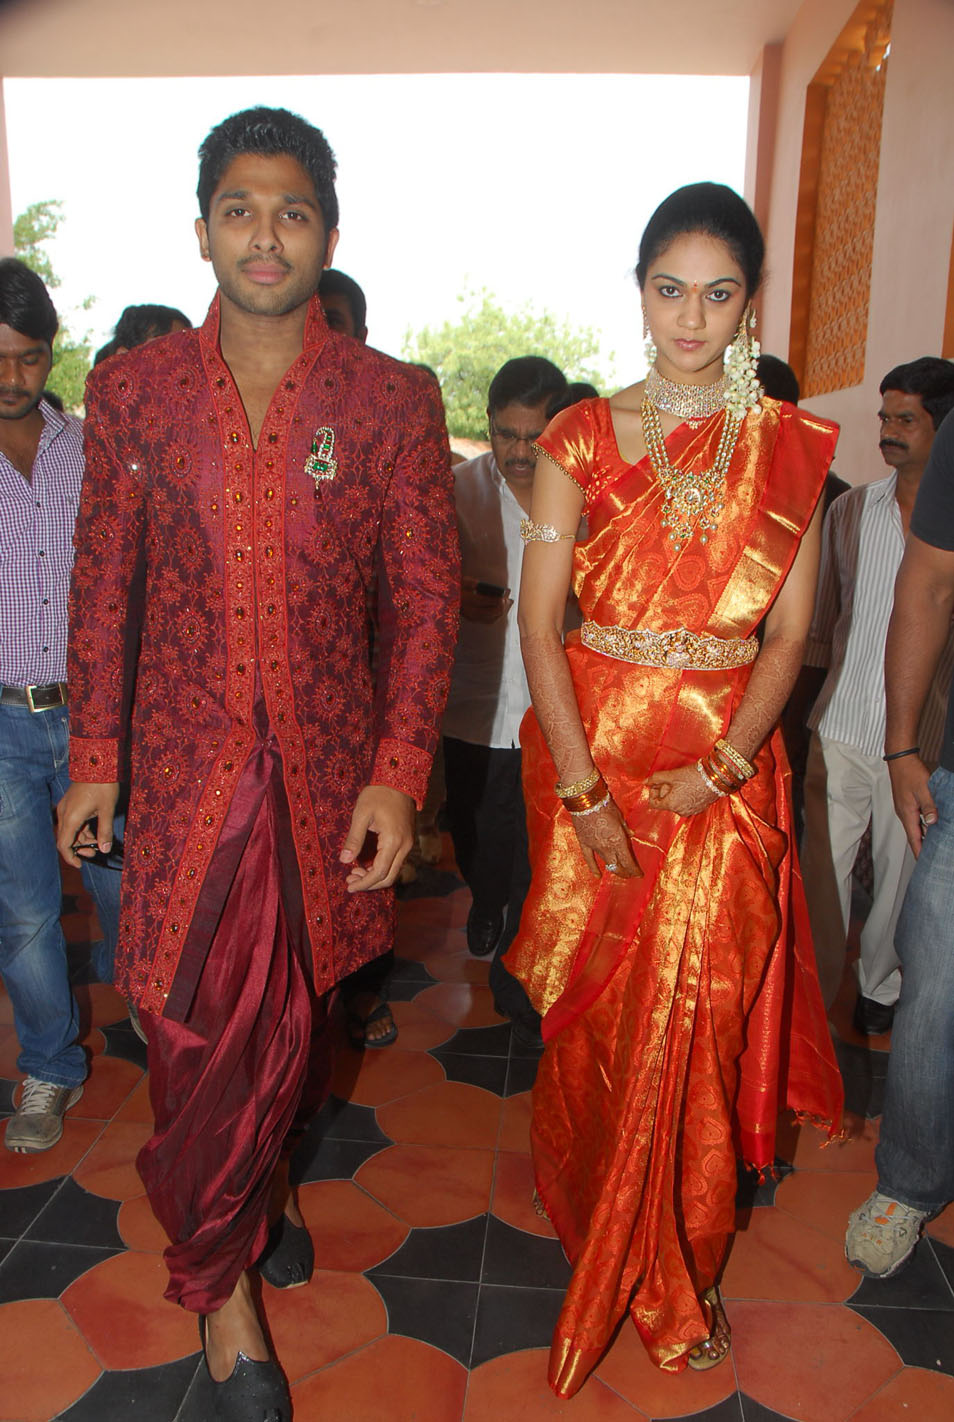 South Indian Groom Reception Dress - Wedding Dress Collections